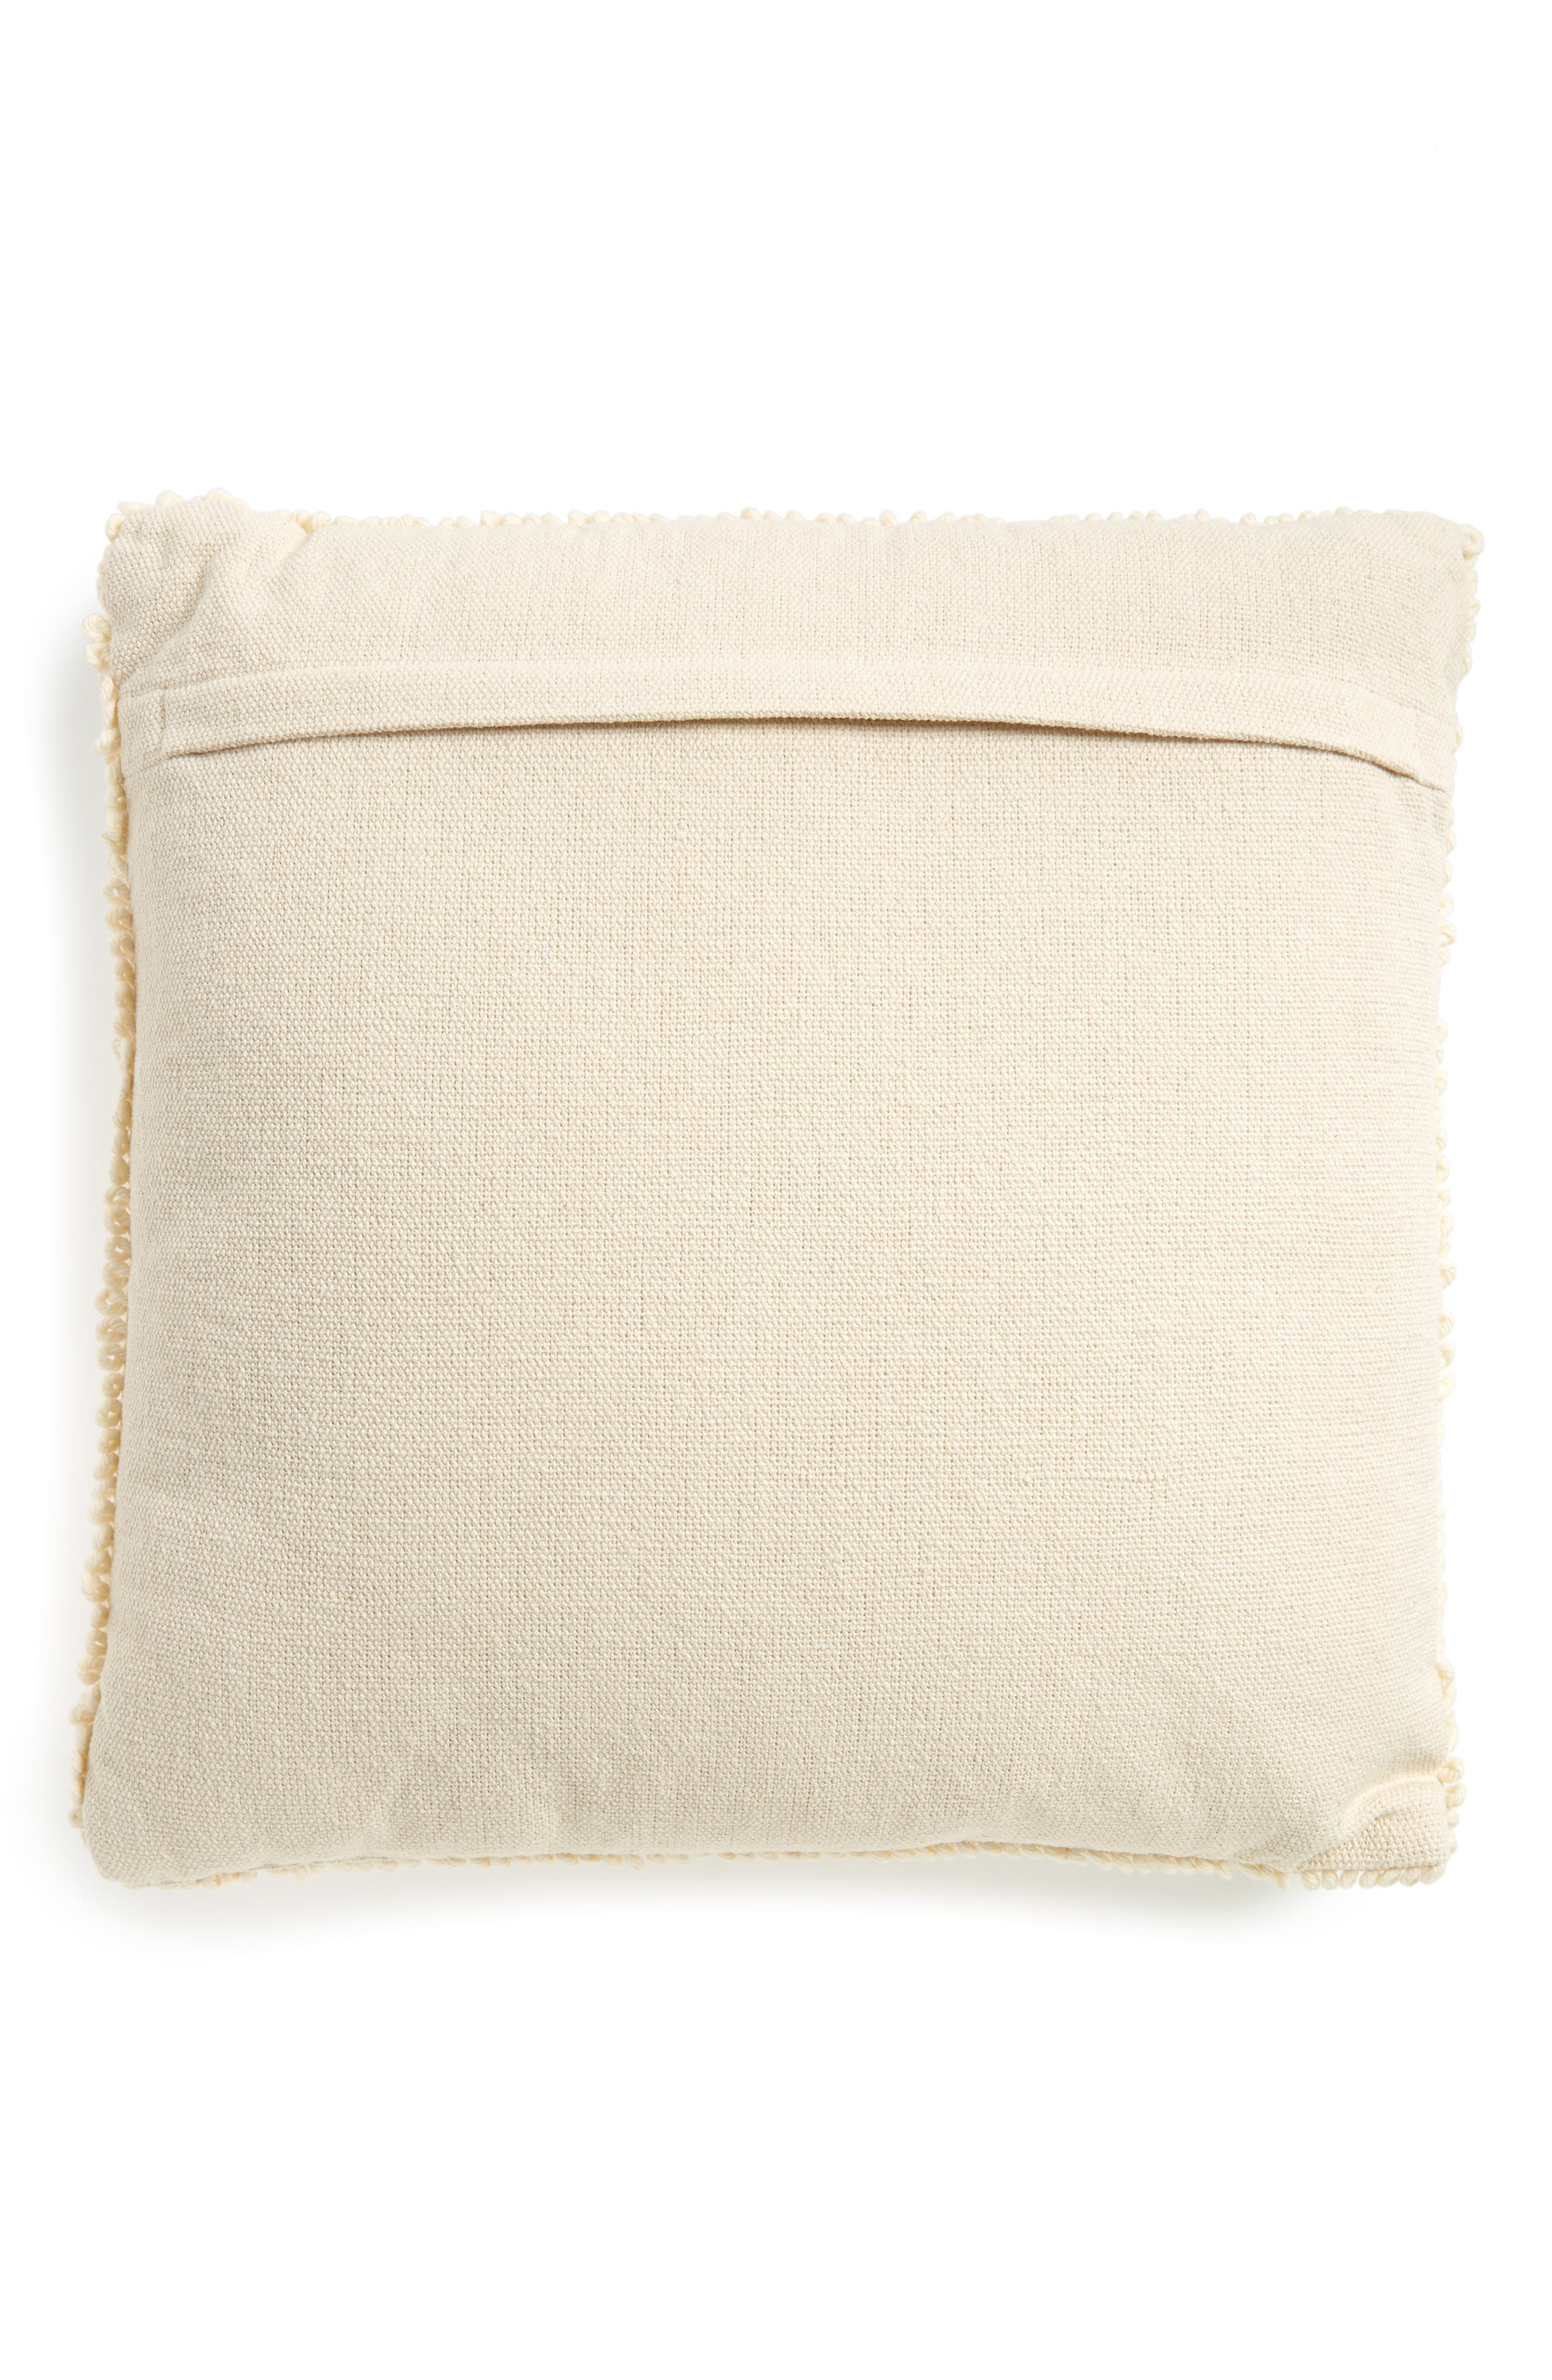 Square Accent Pillow,                             Alternate thumbnail 2, color,                             White